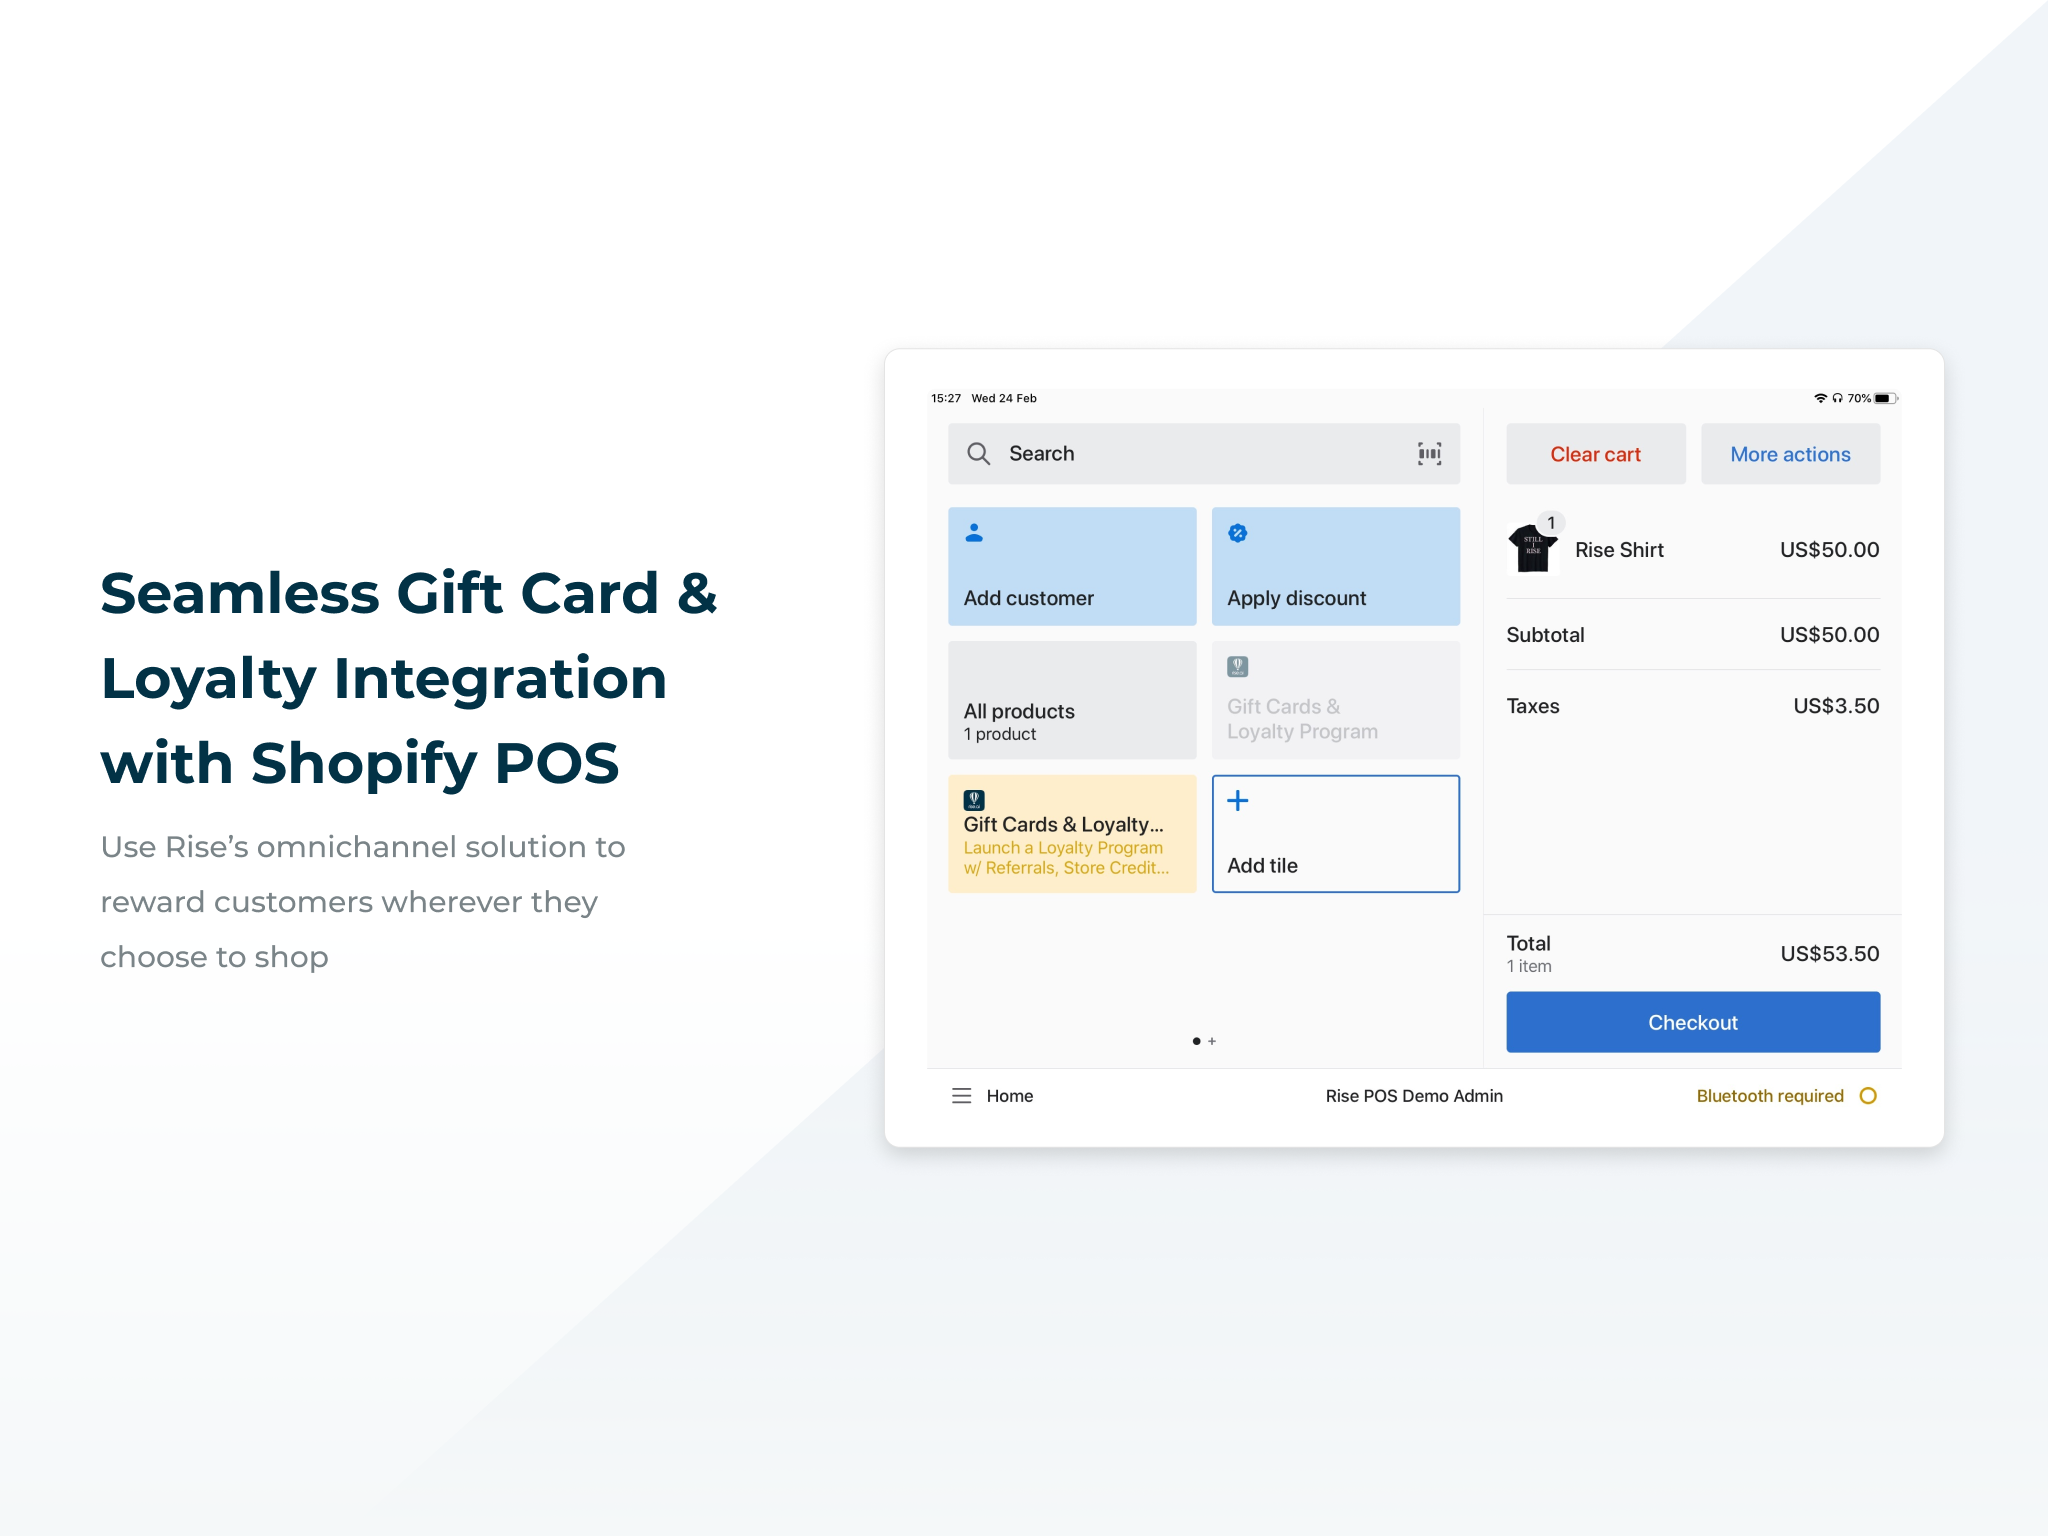 Seamless Gift Card & Loyalty Integration with Shopify POS